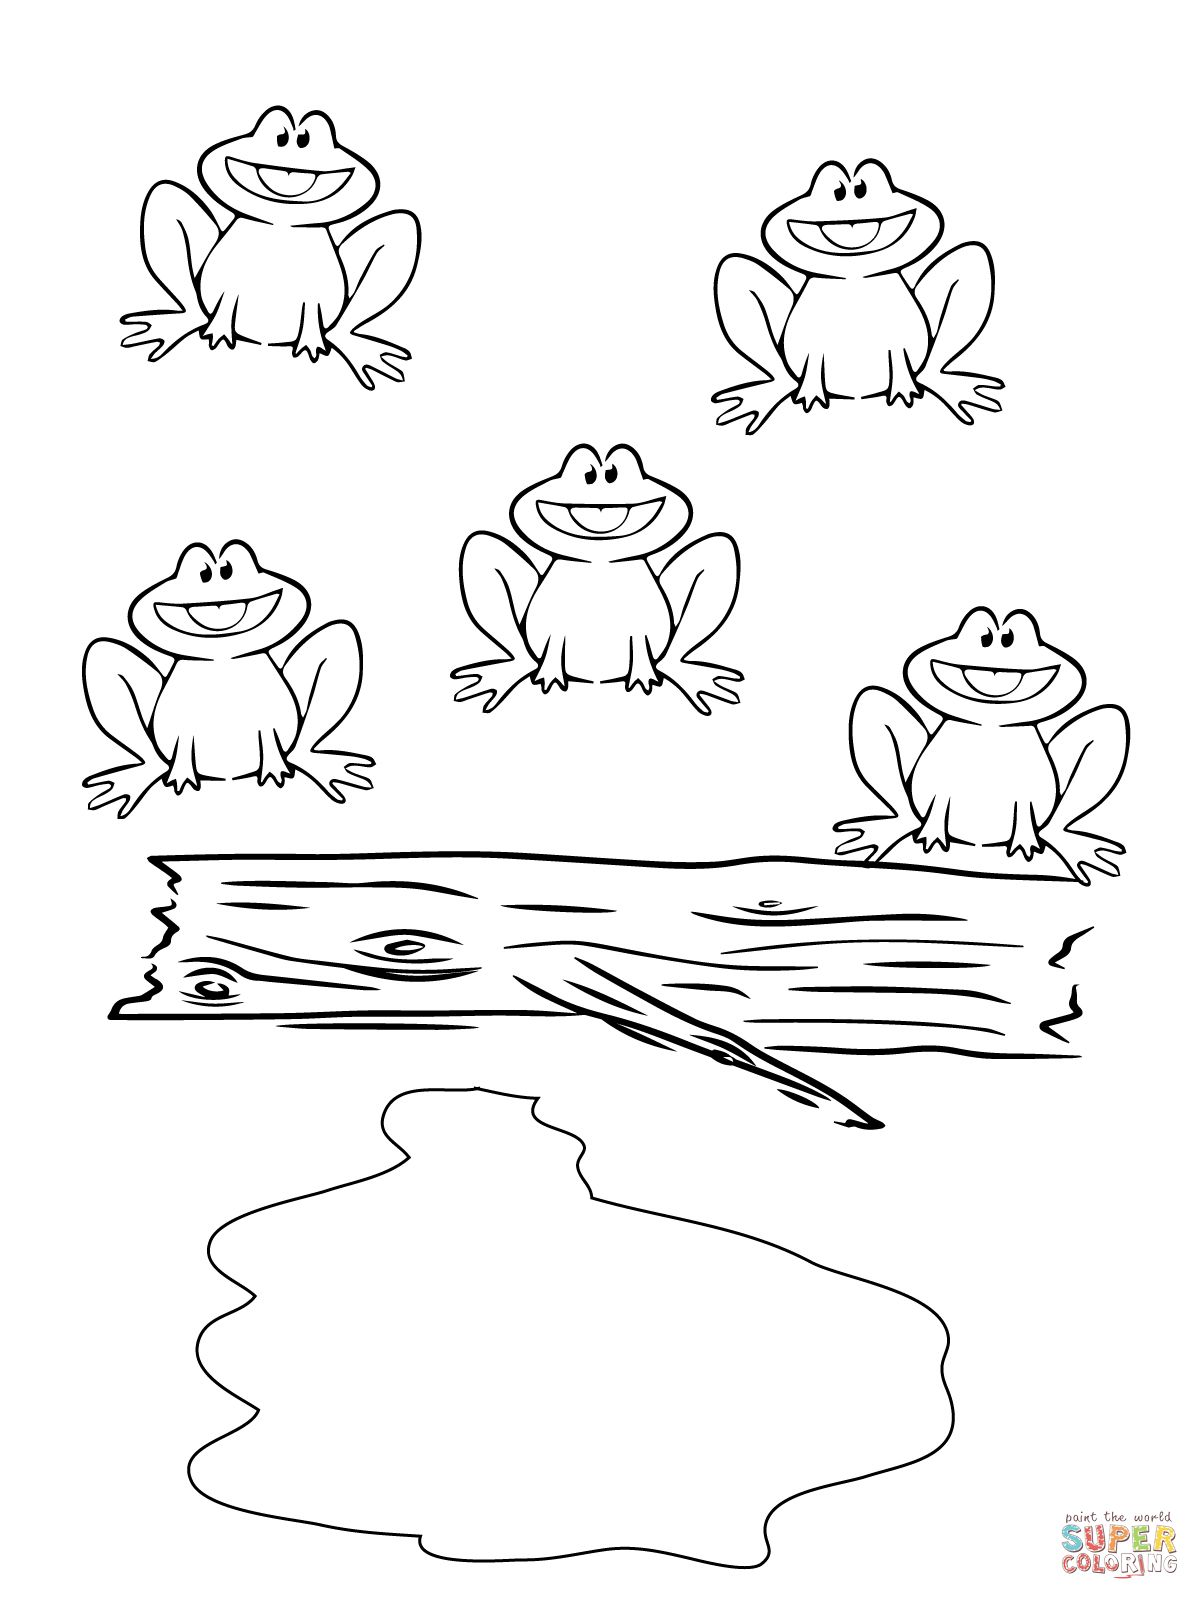 Five Little Speckled Frogs Coloring Page Supercoloring Com